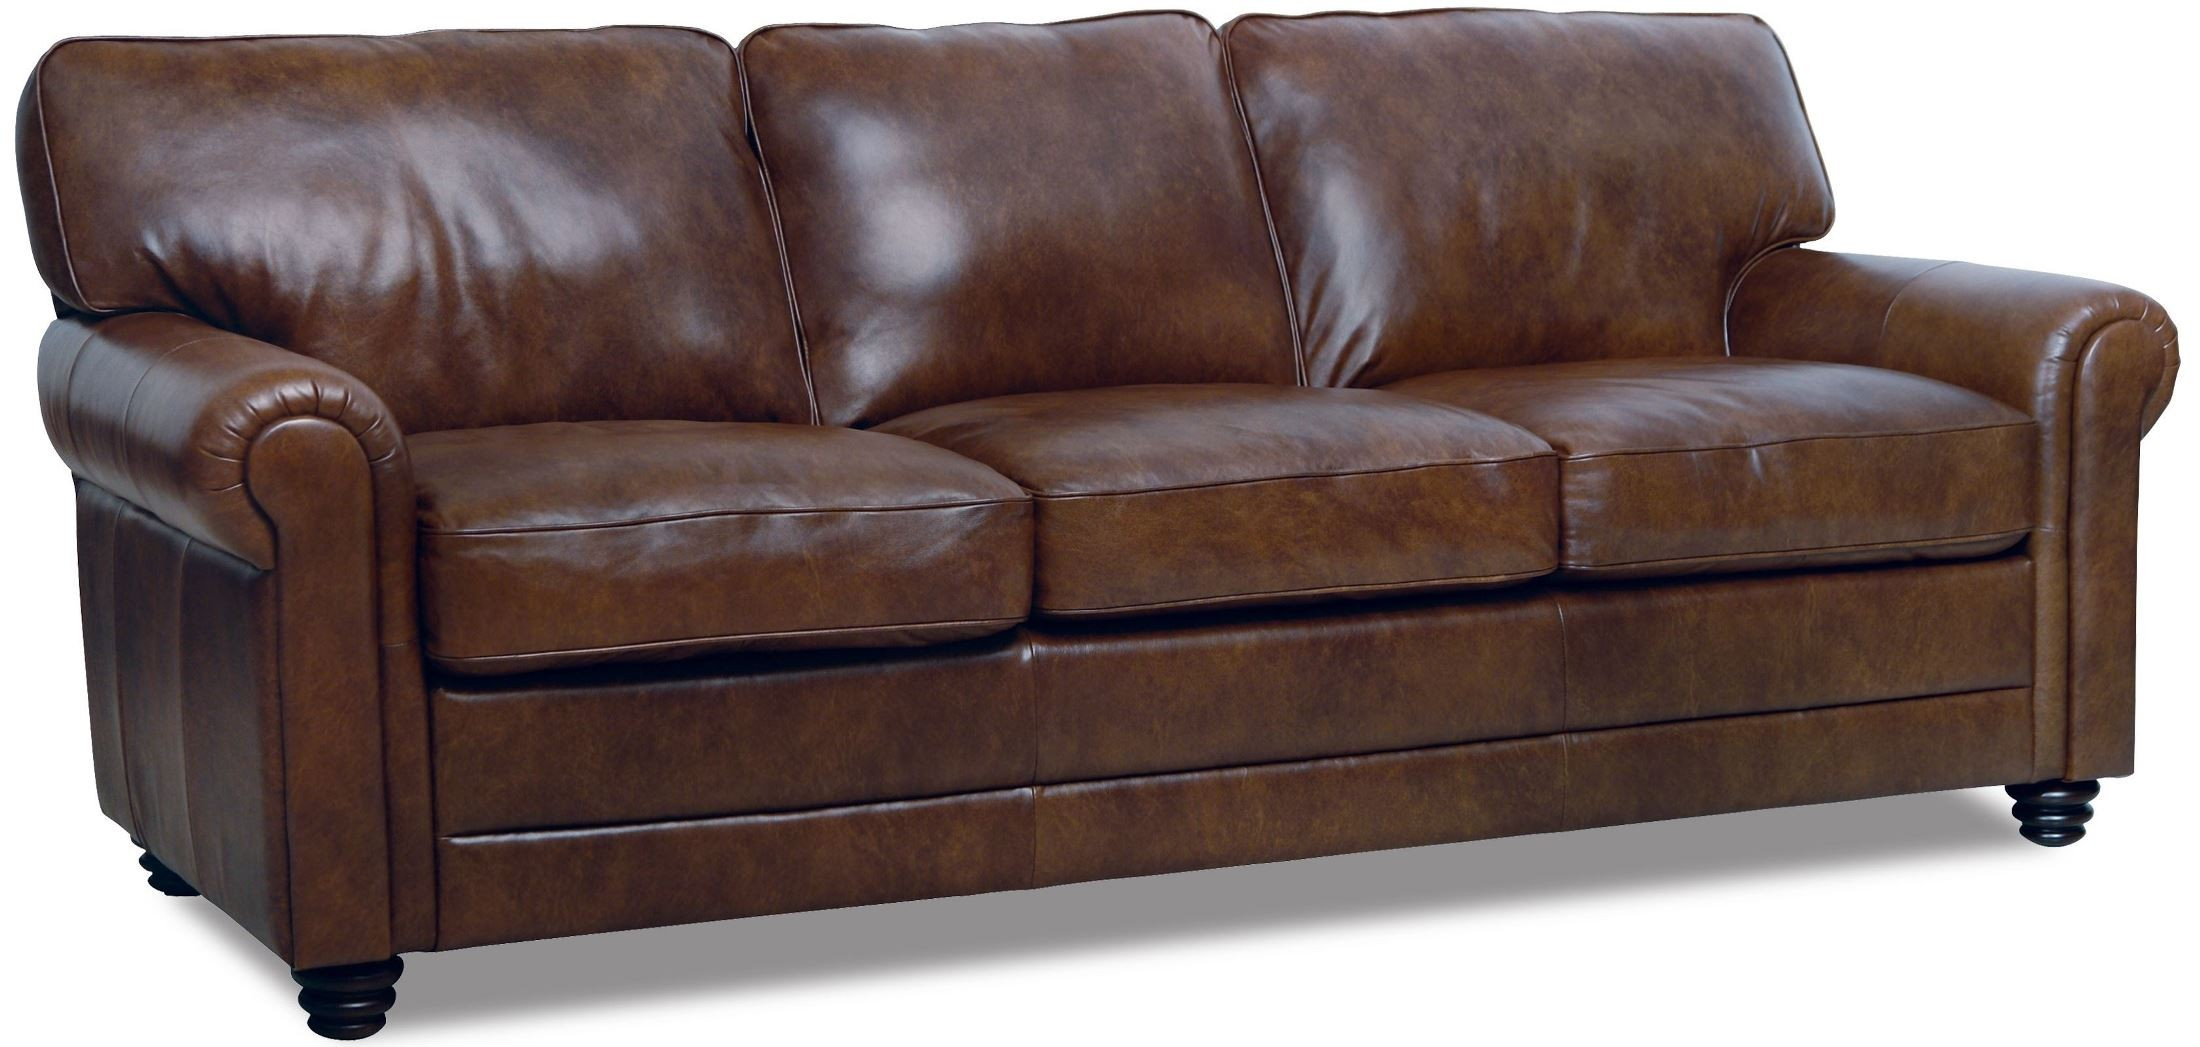 Andrew Italian Leather Living Room Set From Luke Leather (Andrew Intended For Andrew Leather Sofa Chairs (View 6 of 25)